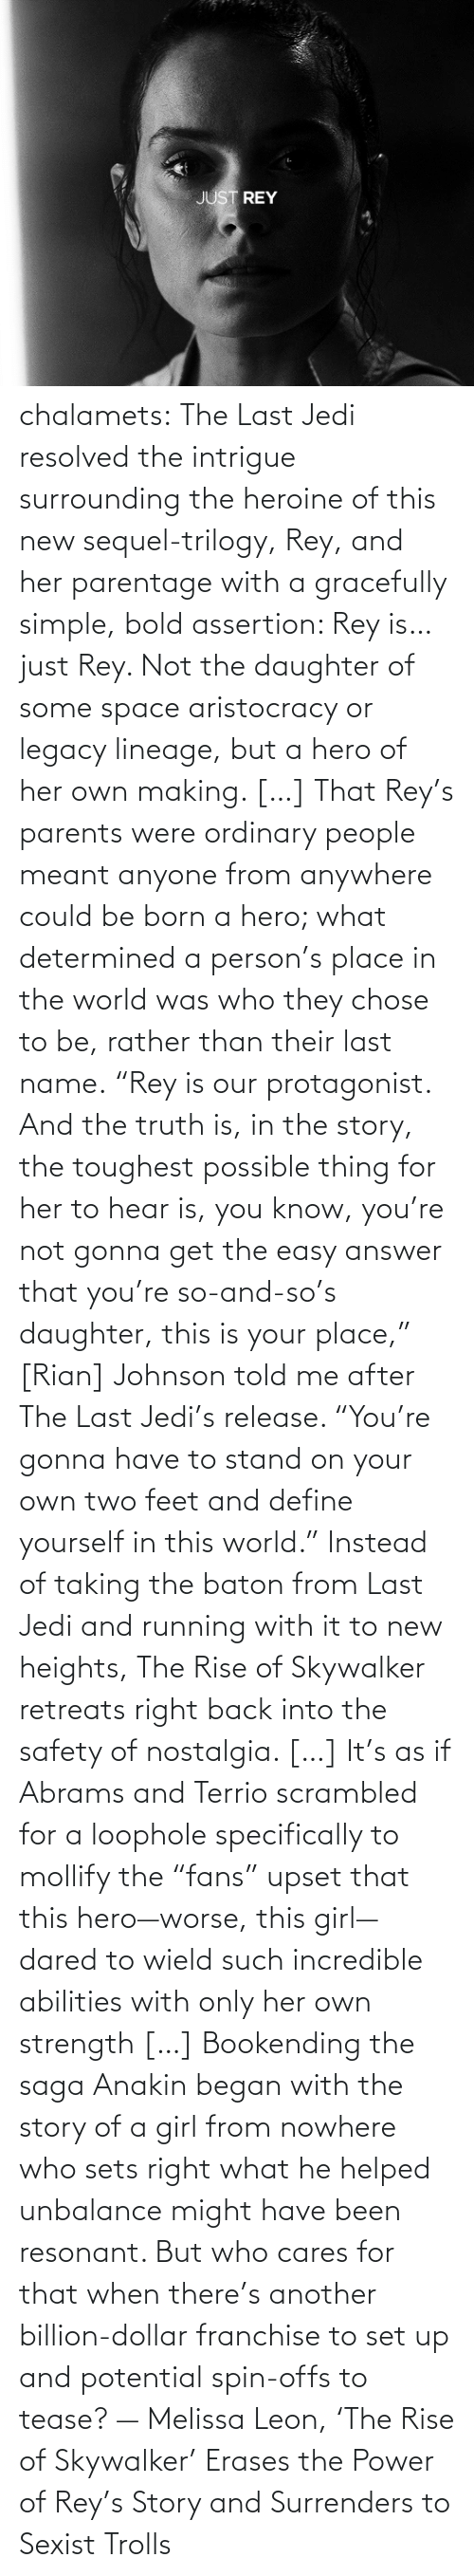 "Jedi: chalamets:  The Last Jedi resolved the intrigue surrounding the heroine of this new sequel-trilogy, Rey, and her parentage with a gracefully simple, bold assertion: Rey is… just Rey. Not the daughter of some space aristocracy or legacy lineage, but a hero of her own making. […] That Rey's parents were ordinary people meant anyone from anywhere could be born a hero; what determined a person's place in the world was who they chose to be, rather than their last name. ""Rey is our protagonist. And the truth is, in the story, the toughest possible thing for her to hear is, you know, you're not gonna get the easy answer that you're so-and-so's daughter, this is your place,"" [Rian] Johnson told me after The Last Jedi's release. ""You're gonna have to stand on your own two feet and define yourself in this world."" Instead of taking the baton from Last Jedi and running with it to new heights, The Rise of Skywalker retreats right back into the safety of nostalgia. […] It's as if Abrams and Terrio scrambled for a loophole specifically to mollify the ""fans"" upset that this hero—worse, this girl—dared to wield such incredible abilities with only her own strength […] Bookending the saga Anakin began with the story of a girl from nowhere who sets right what he helped unbalance might have been resonant. But who cares for that when there's another billion-dollar franchise to set up and potential spin-offs to tease? — Melissa Leon, 'The Rise of Skywalker' Erases the Power of Rey's Story and Surrenders to Sexist Trolls"